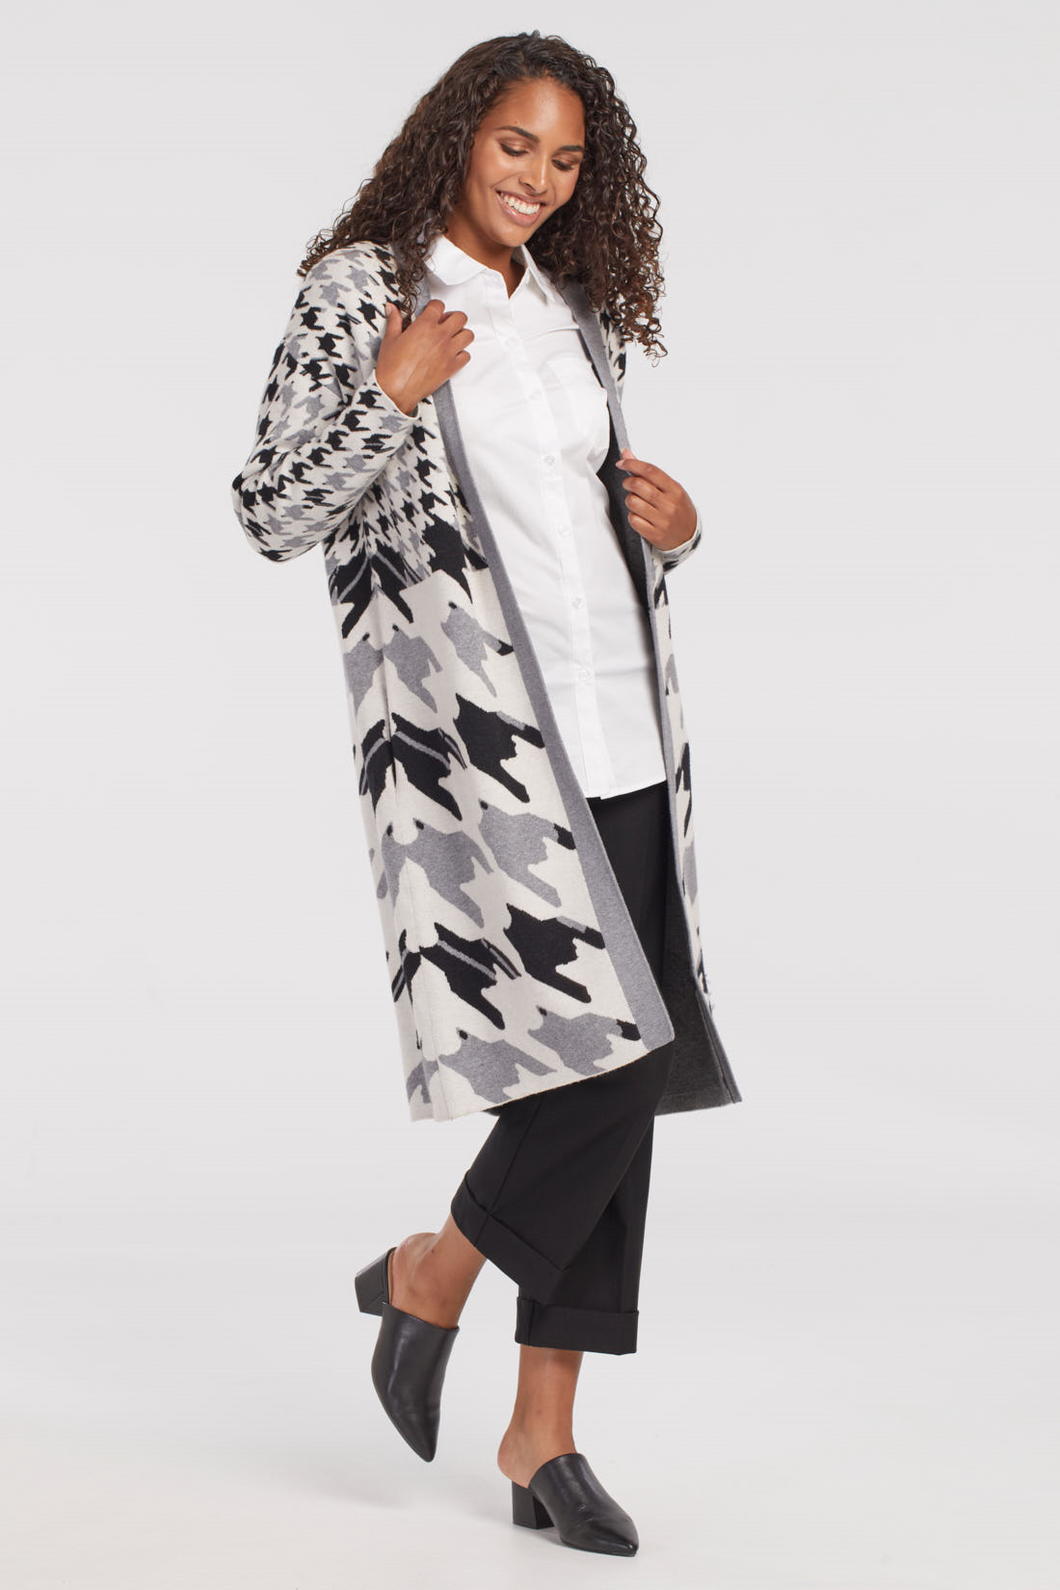 Tribal Houndstooth Cardigan - Style 43420